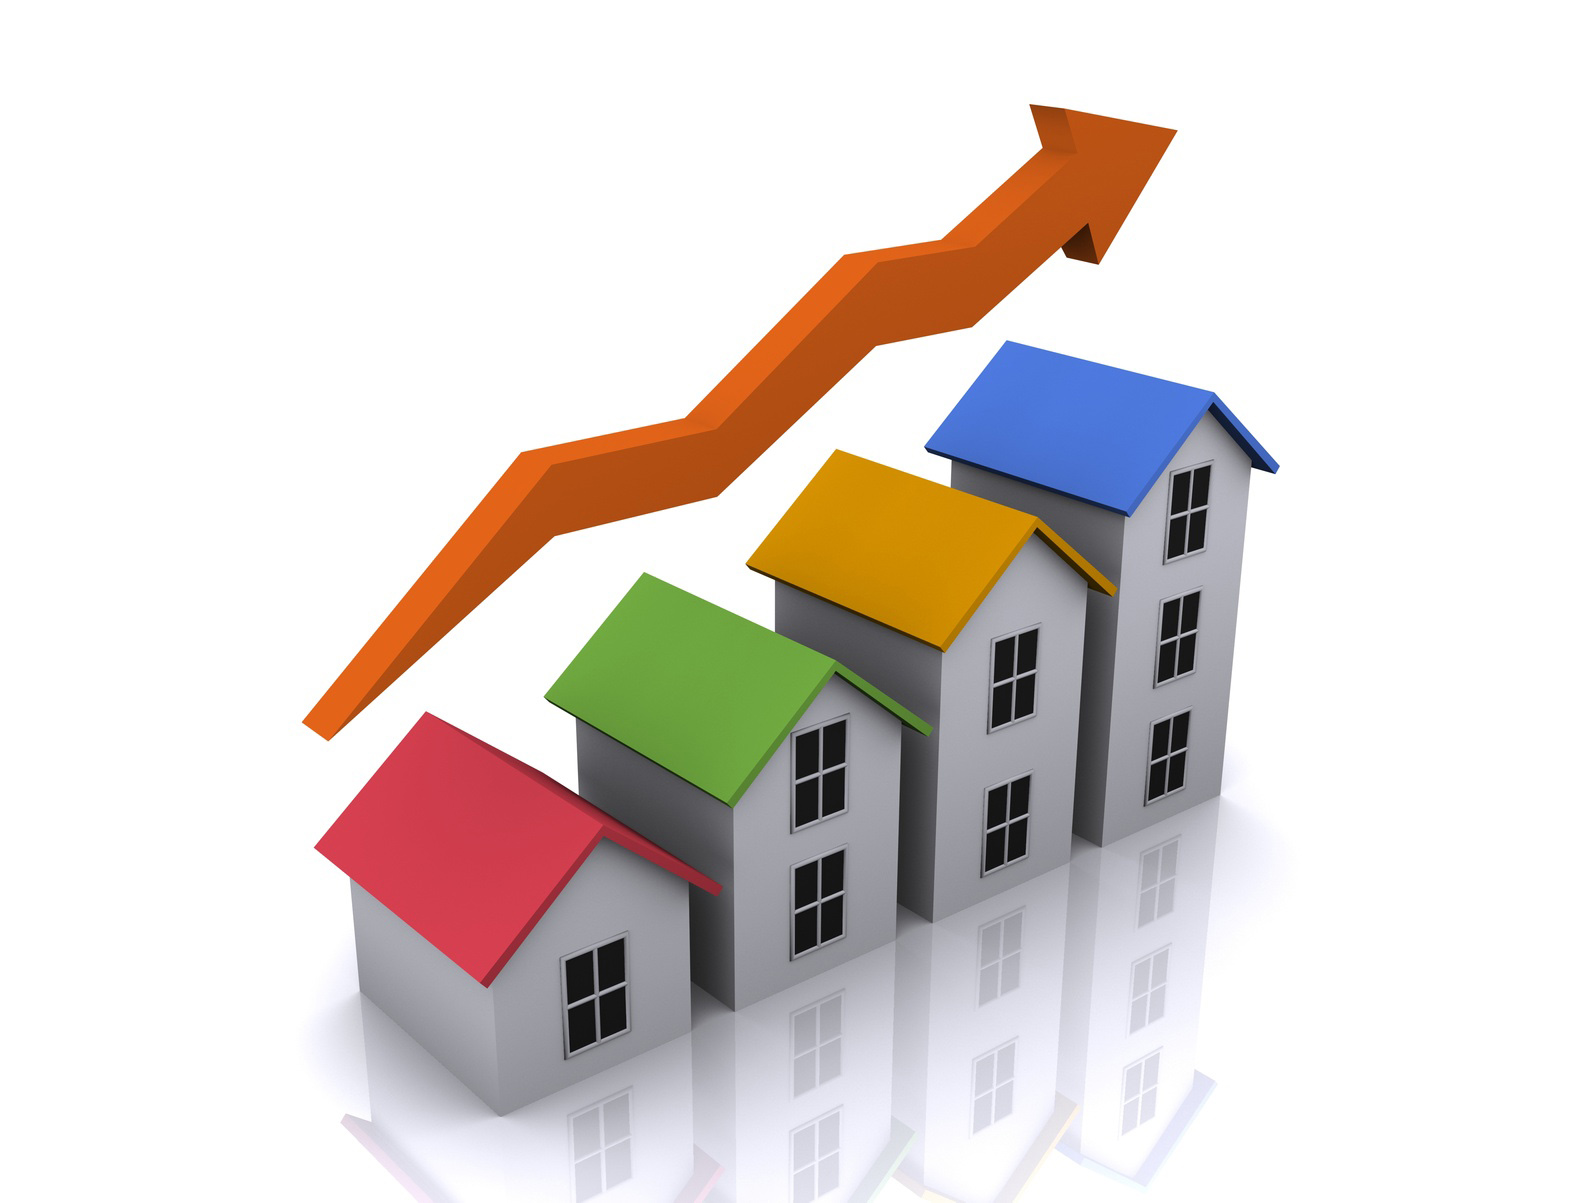 Home Price Predictions Are Positive For The Next Five